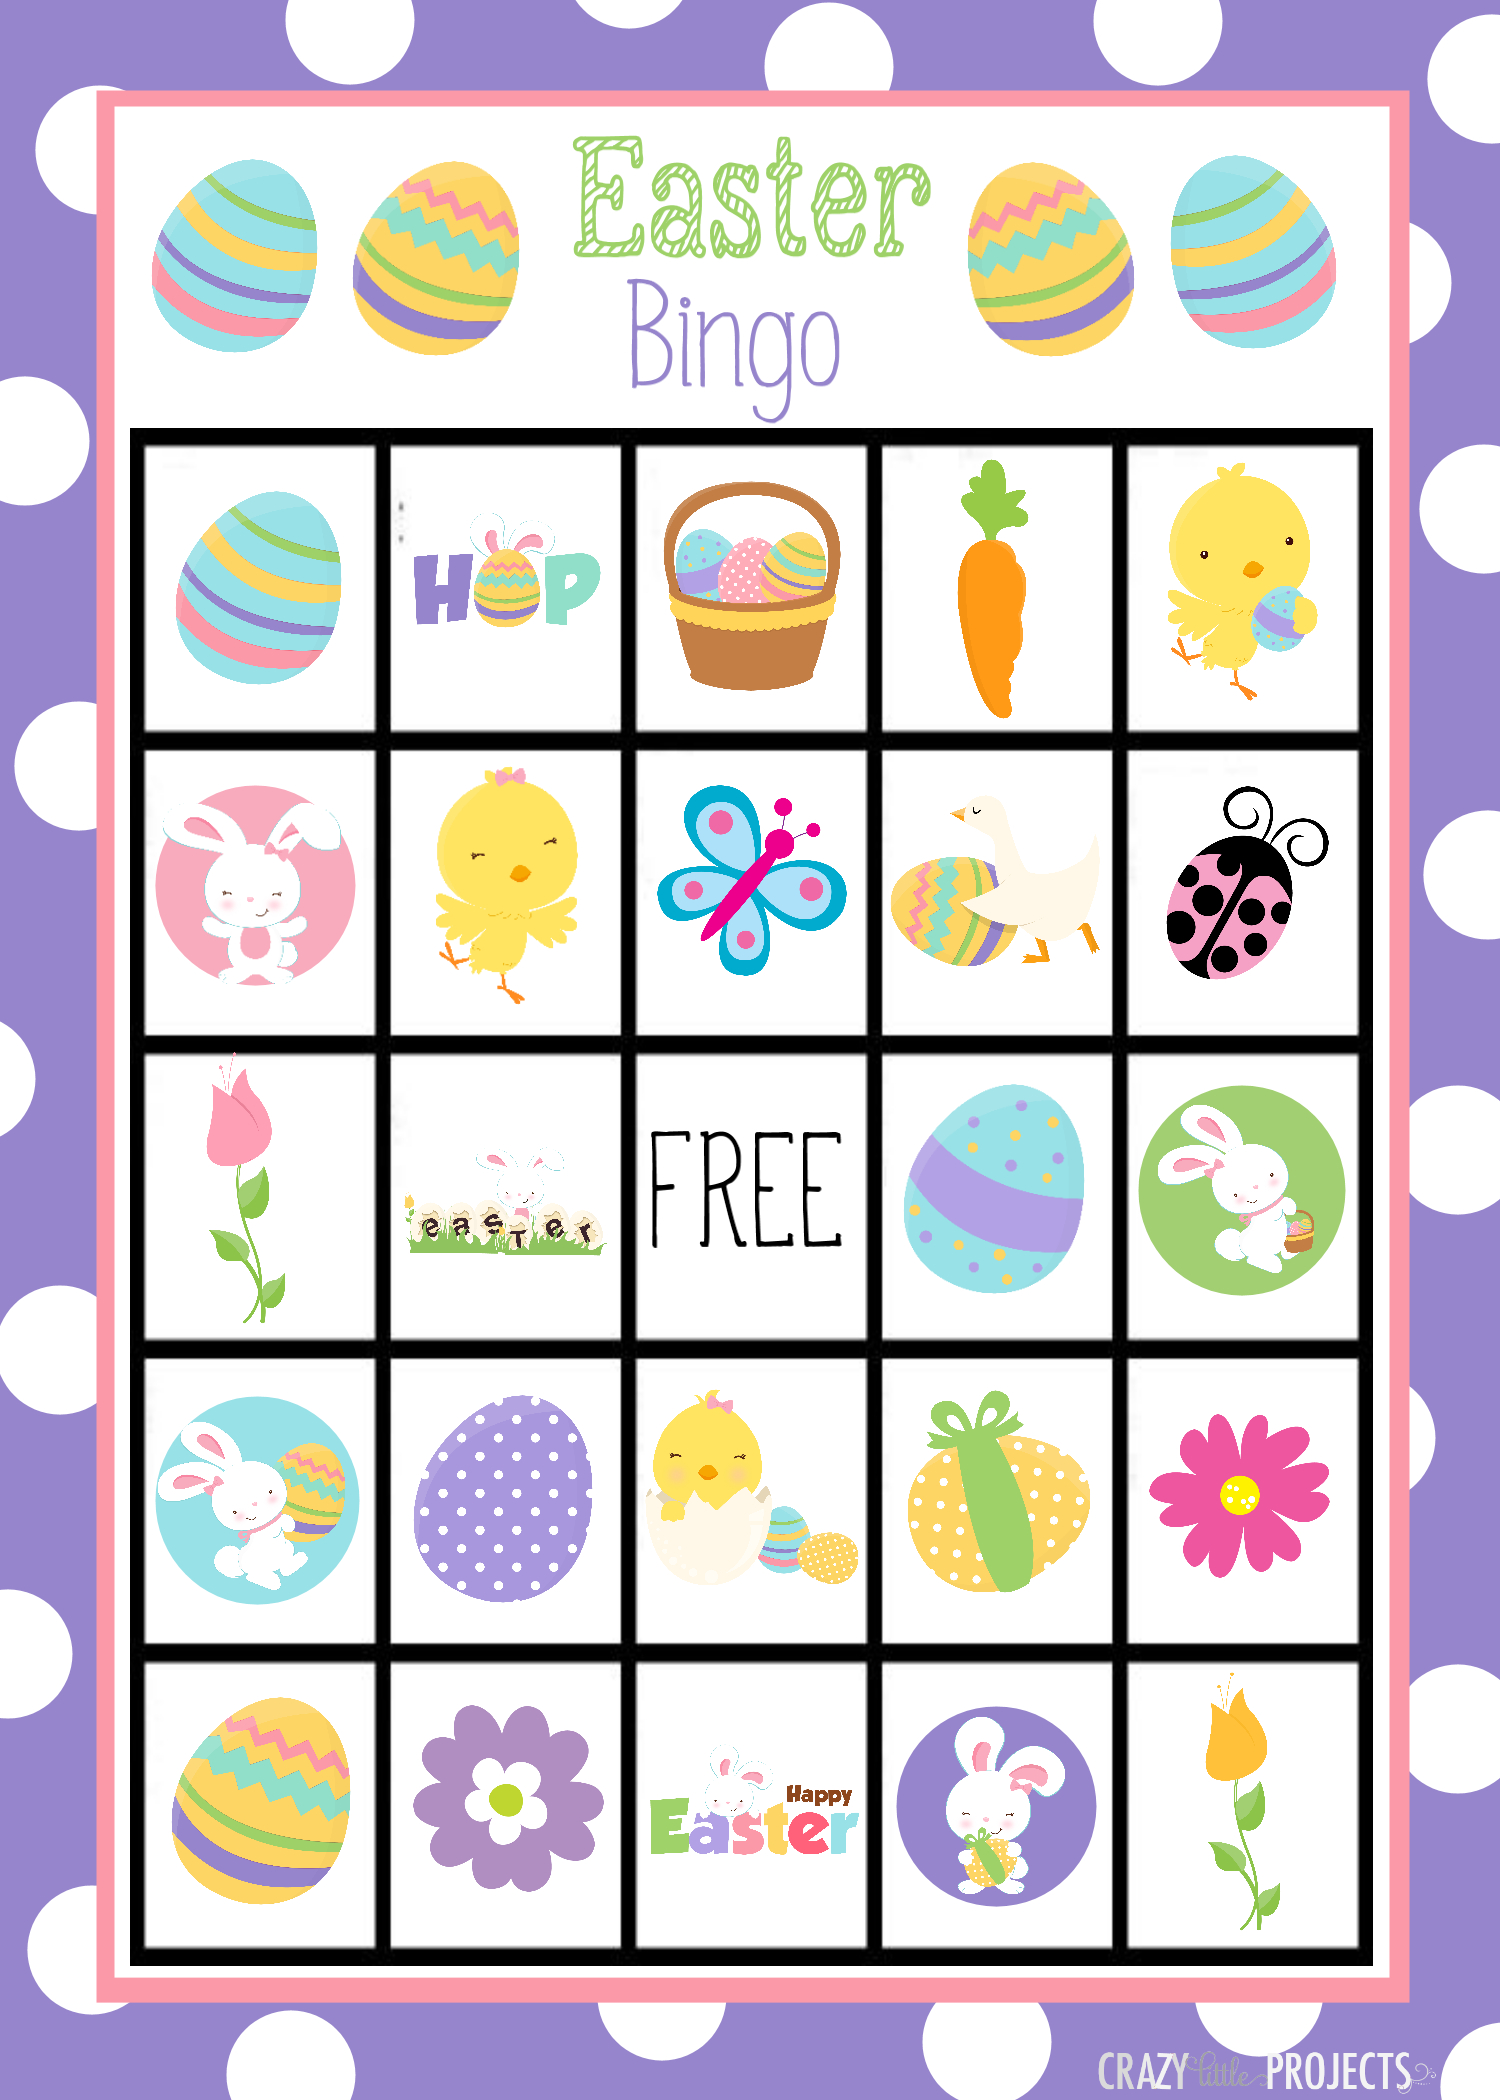 Easter Bingo Free Printable – Hd Easter Images - Free Printable Religious Easter Bingo Cards